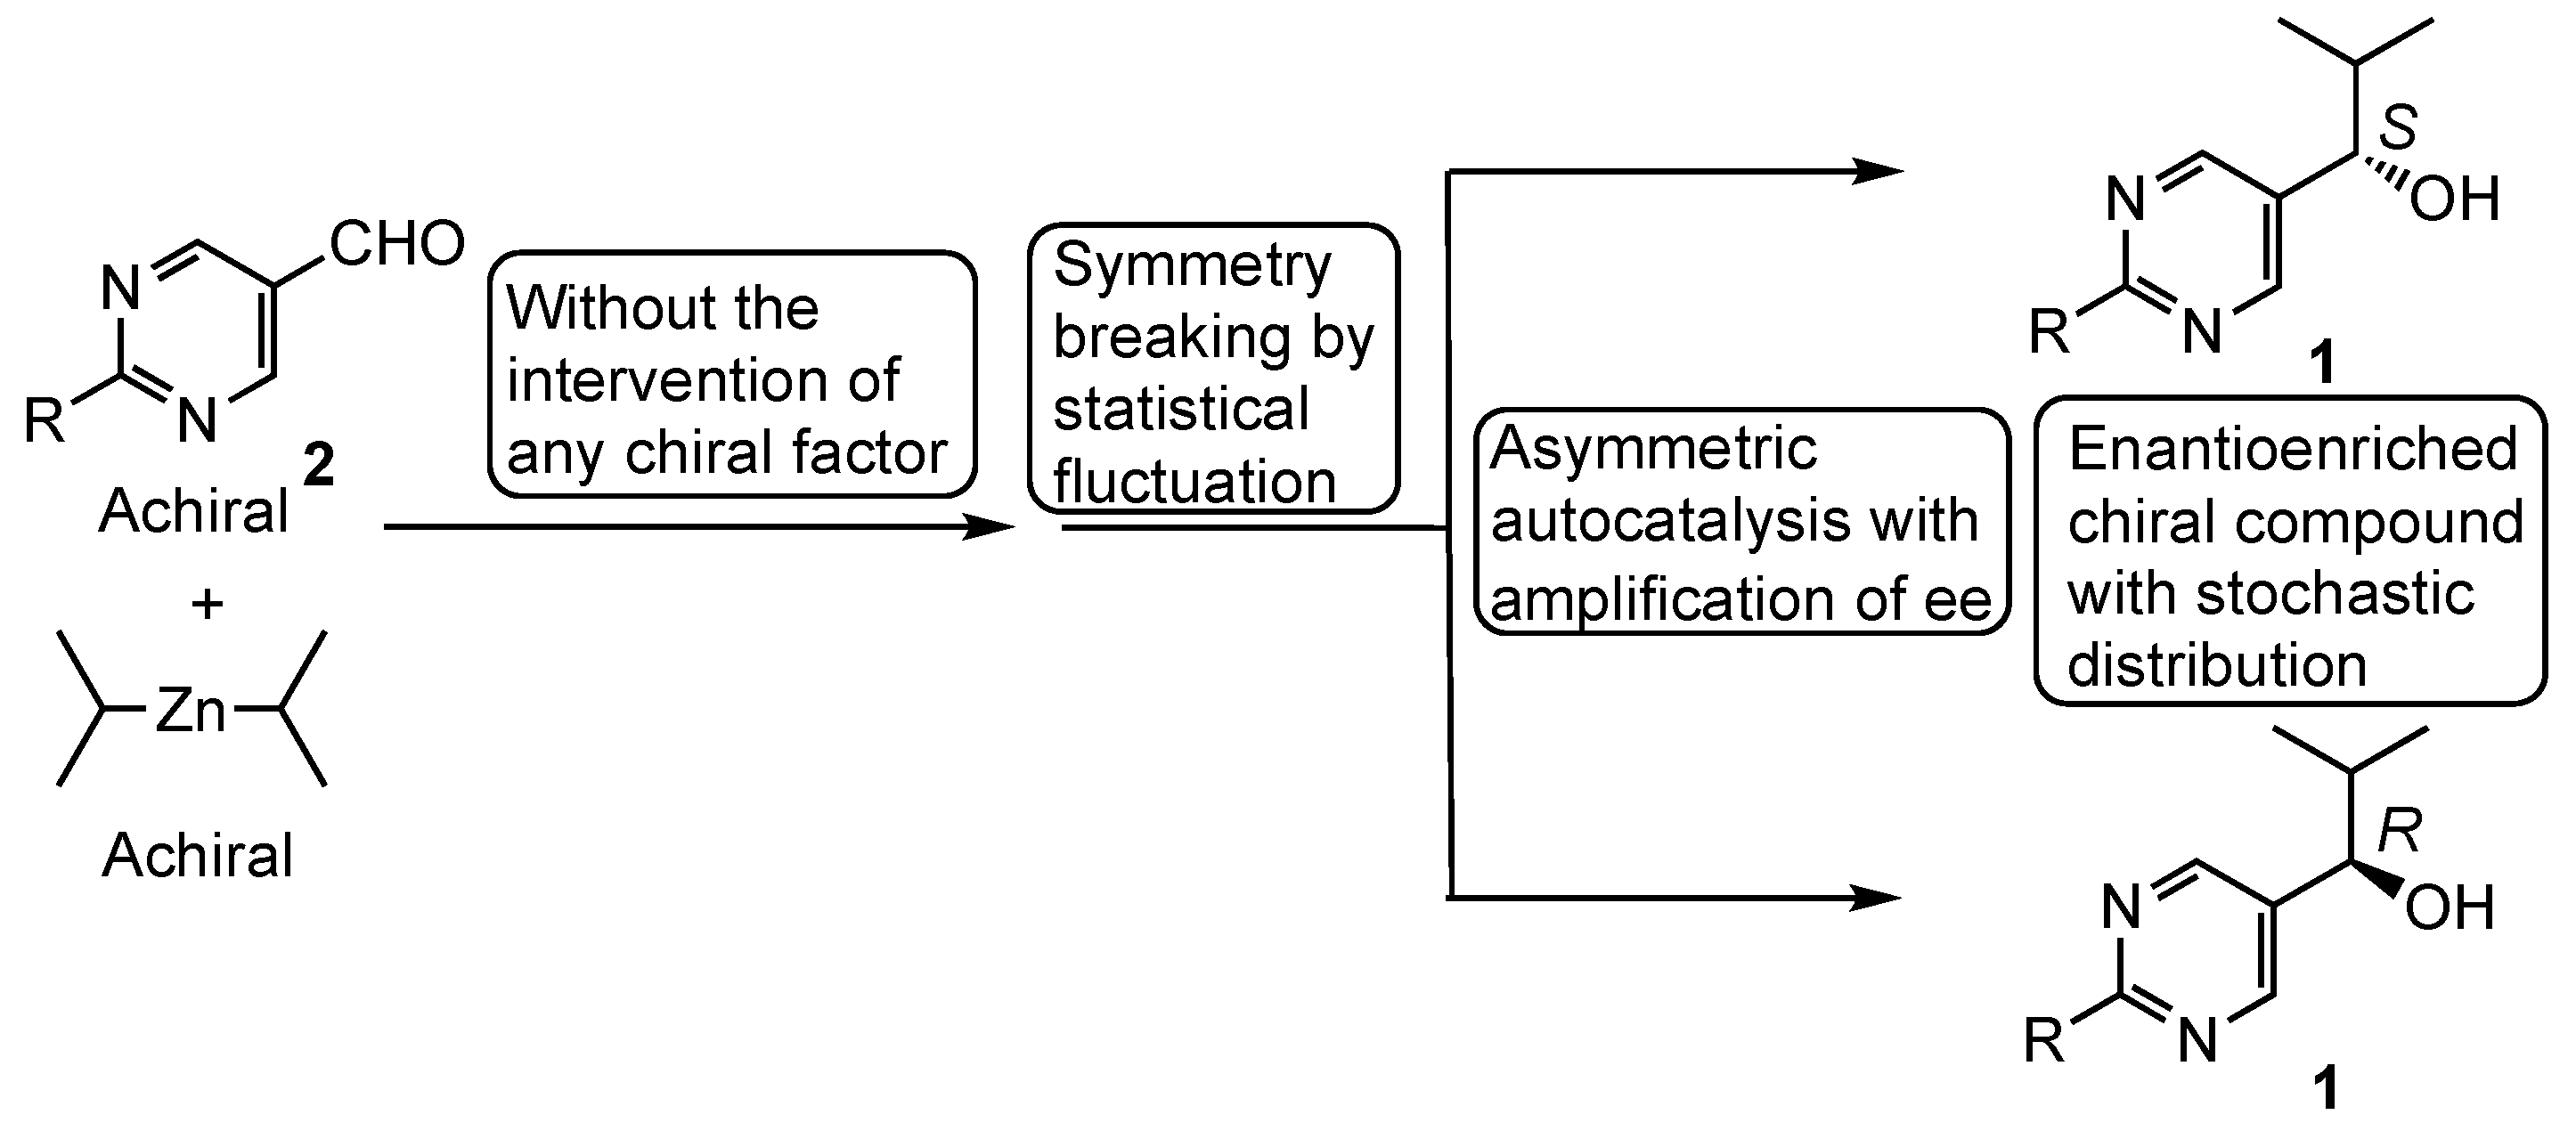 Symmetry Free Full Text Role Of Asymmetric Autocatalysis In The